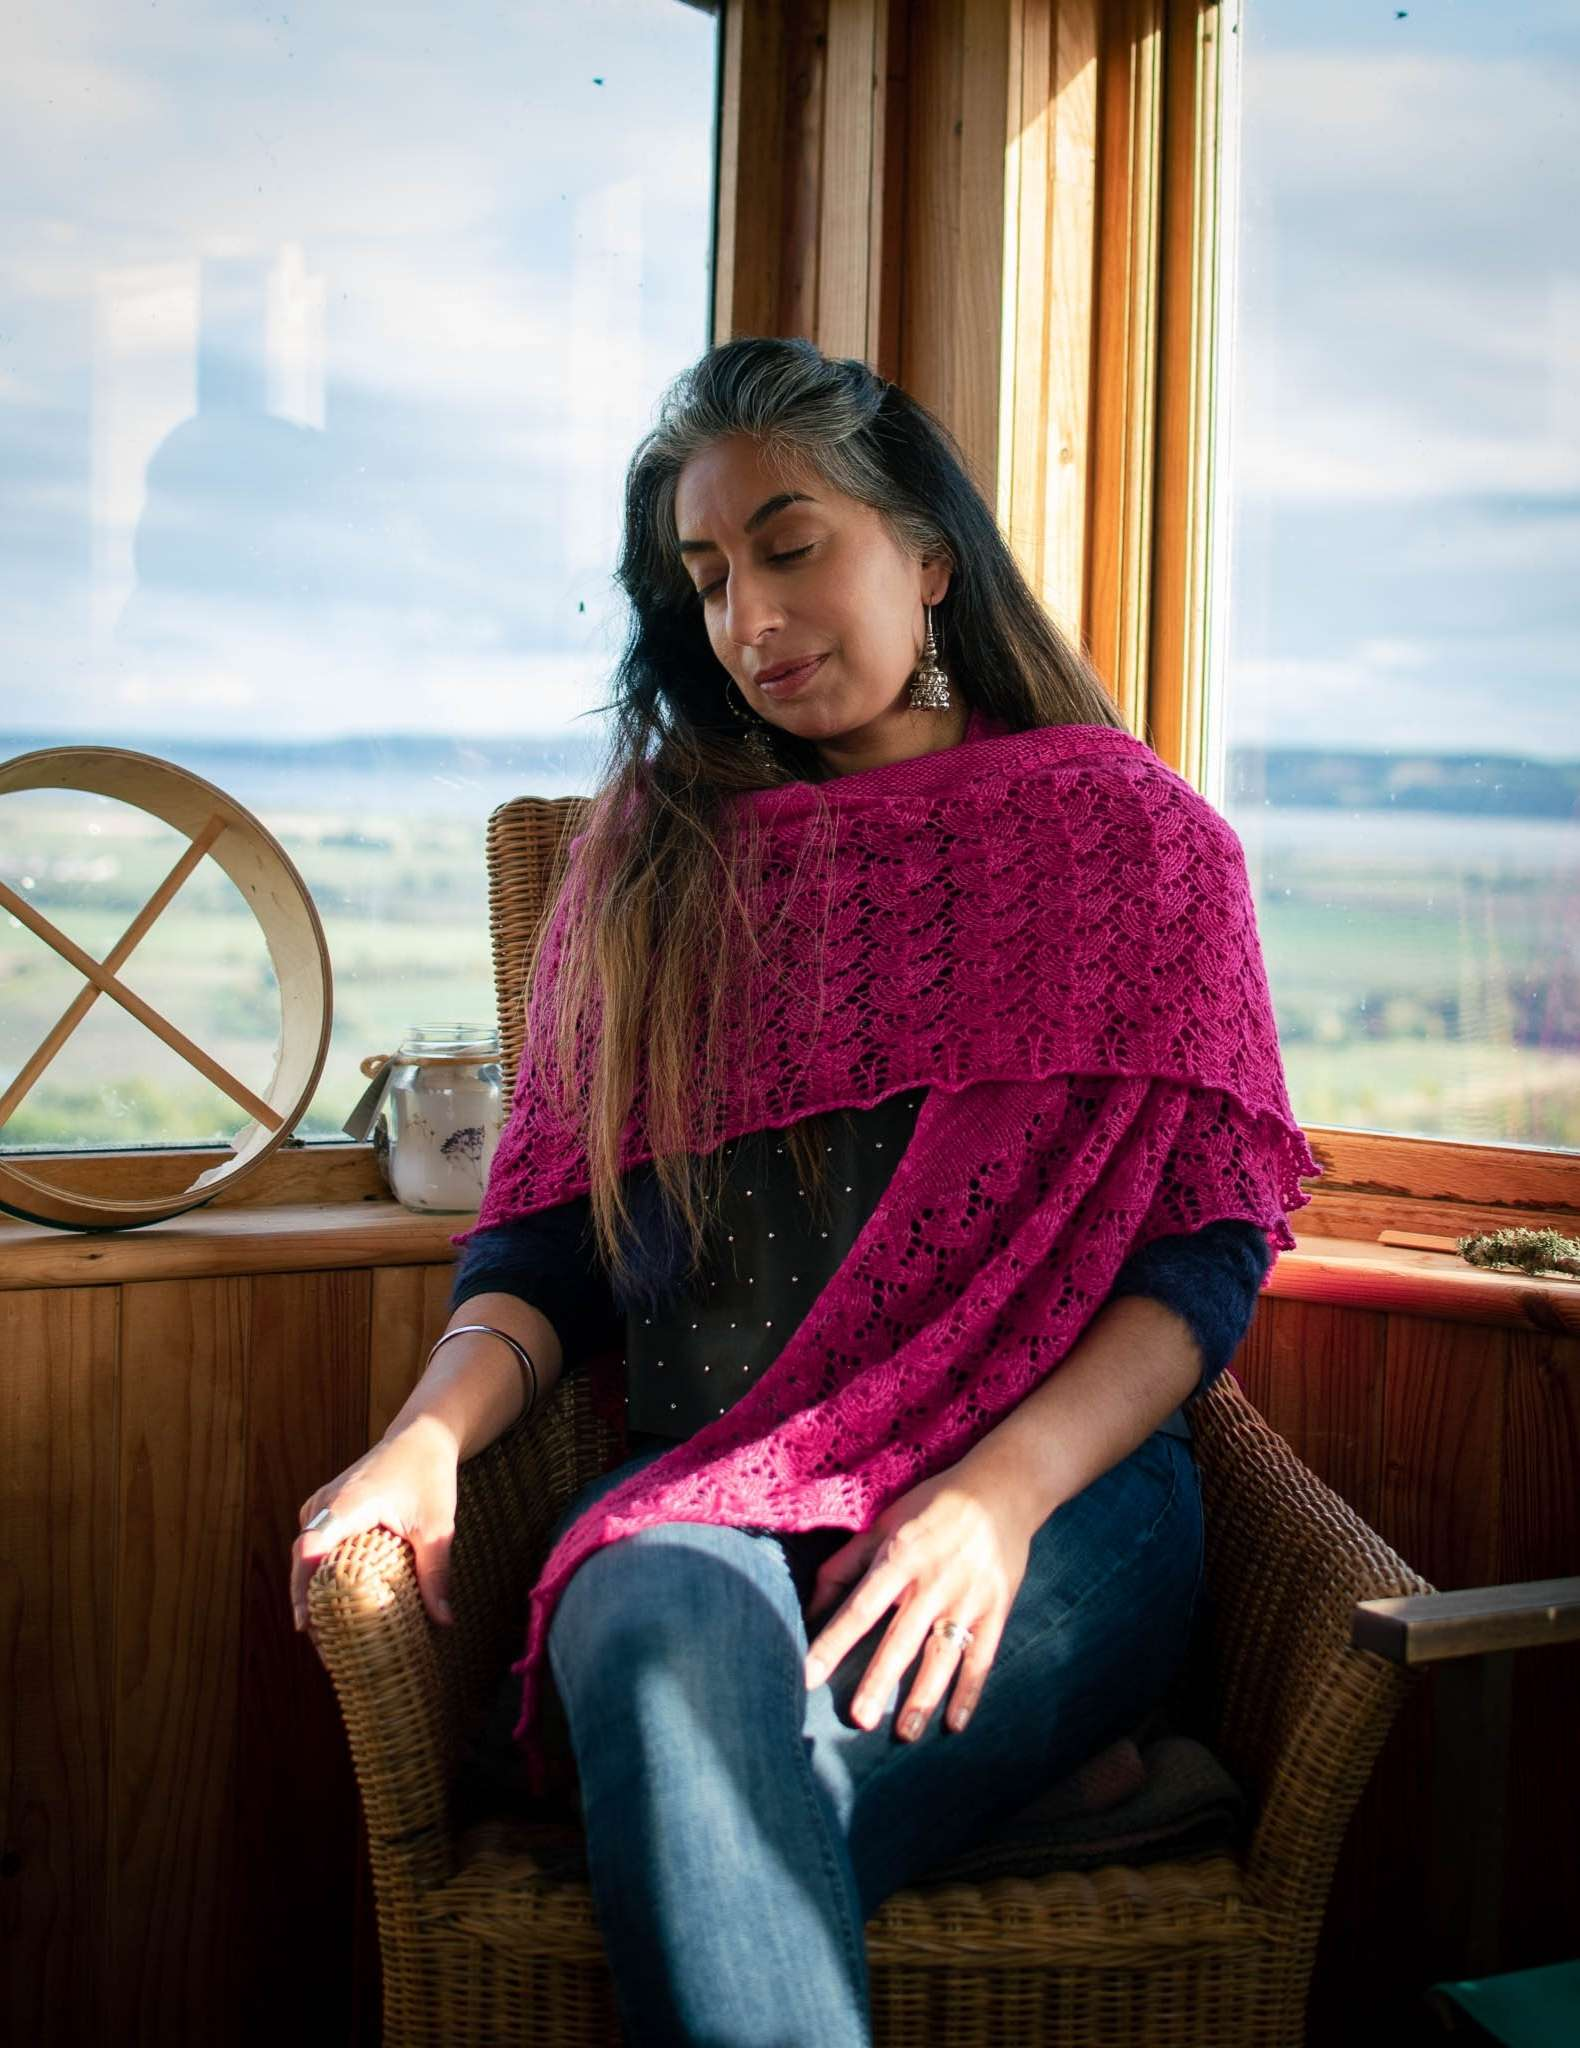 A woman with dark hair sits in front of a window showing a rural landscape. She is wearing a bright pink lace shawl and jeans, is looking down and has her legs crossed. She sits on a wooden chair.